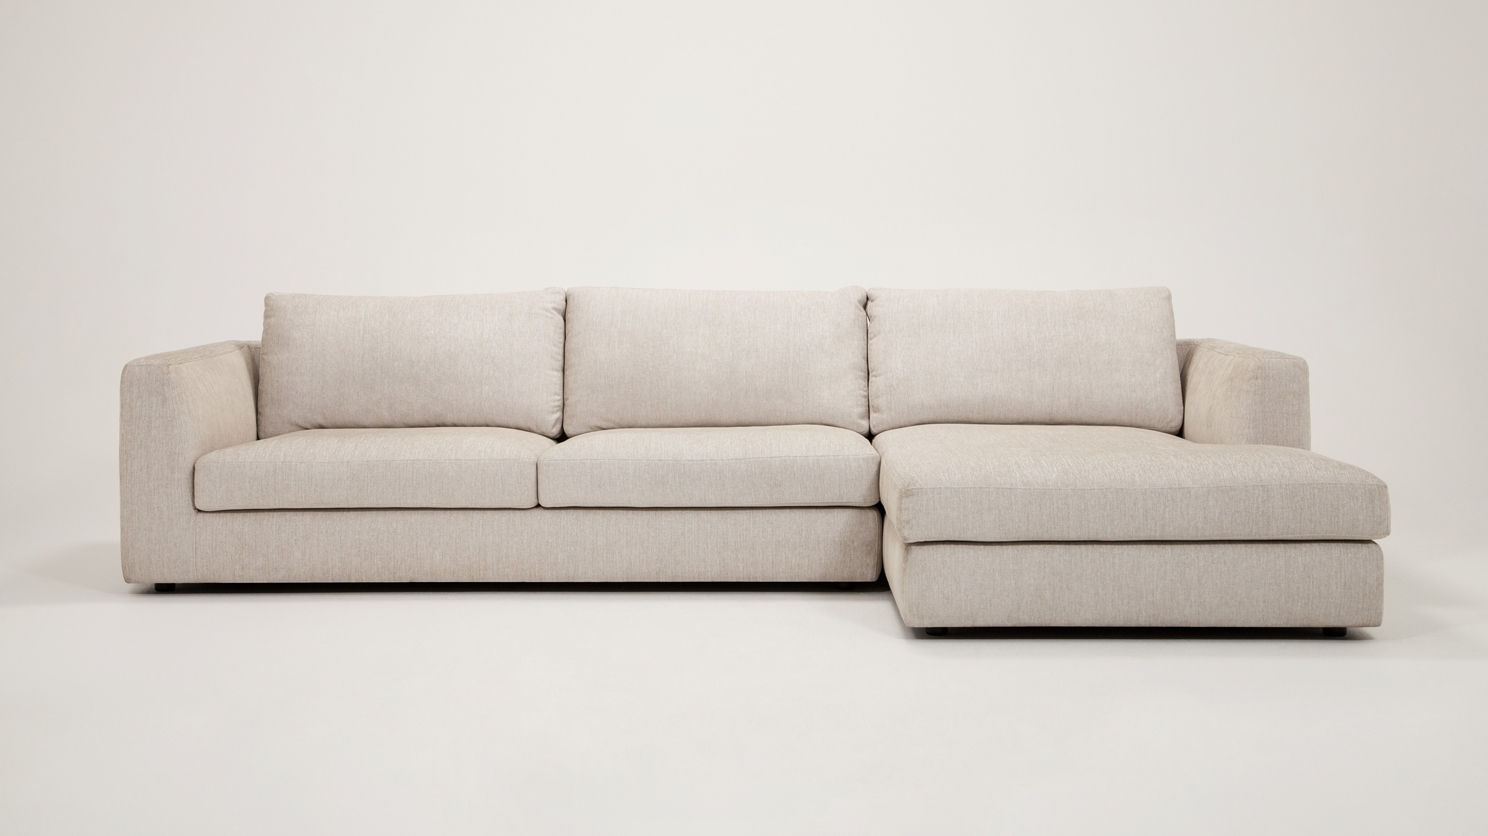 Eq3 | Cello 2 Piece Sectional Sofa With Chaise – Fabric Regarding Eq3 Sectional Sofas (View 9 of 10)